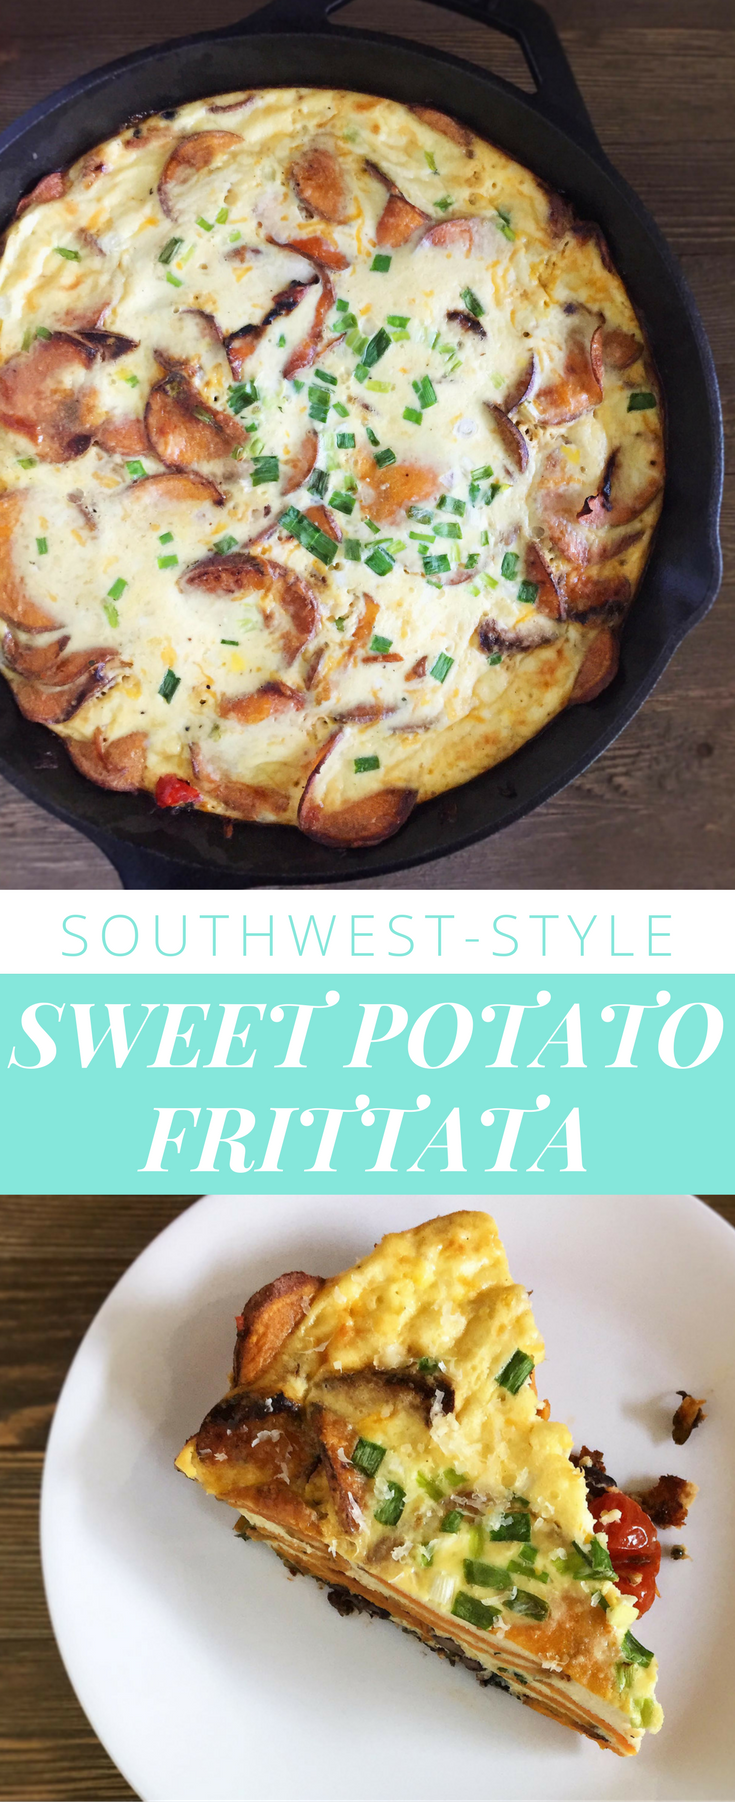 southwest-style-sweet-potato-frittata-pin6.png